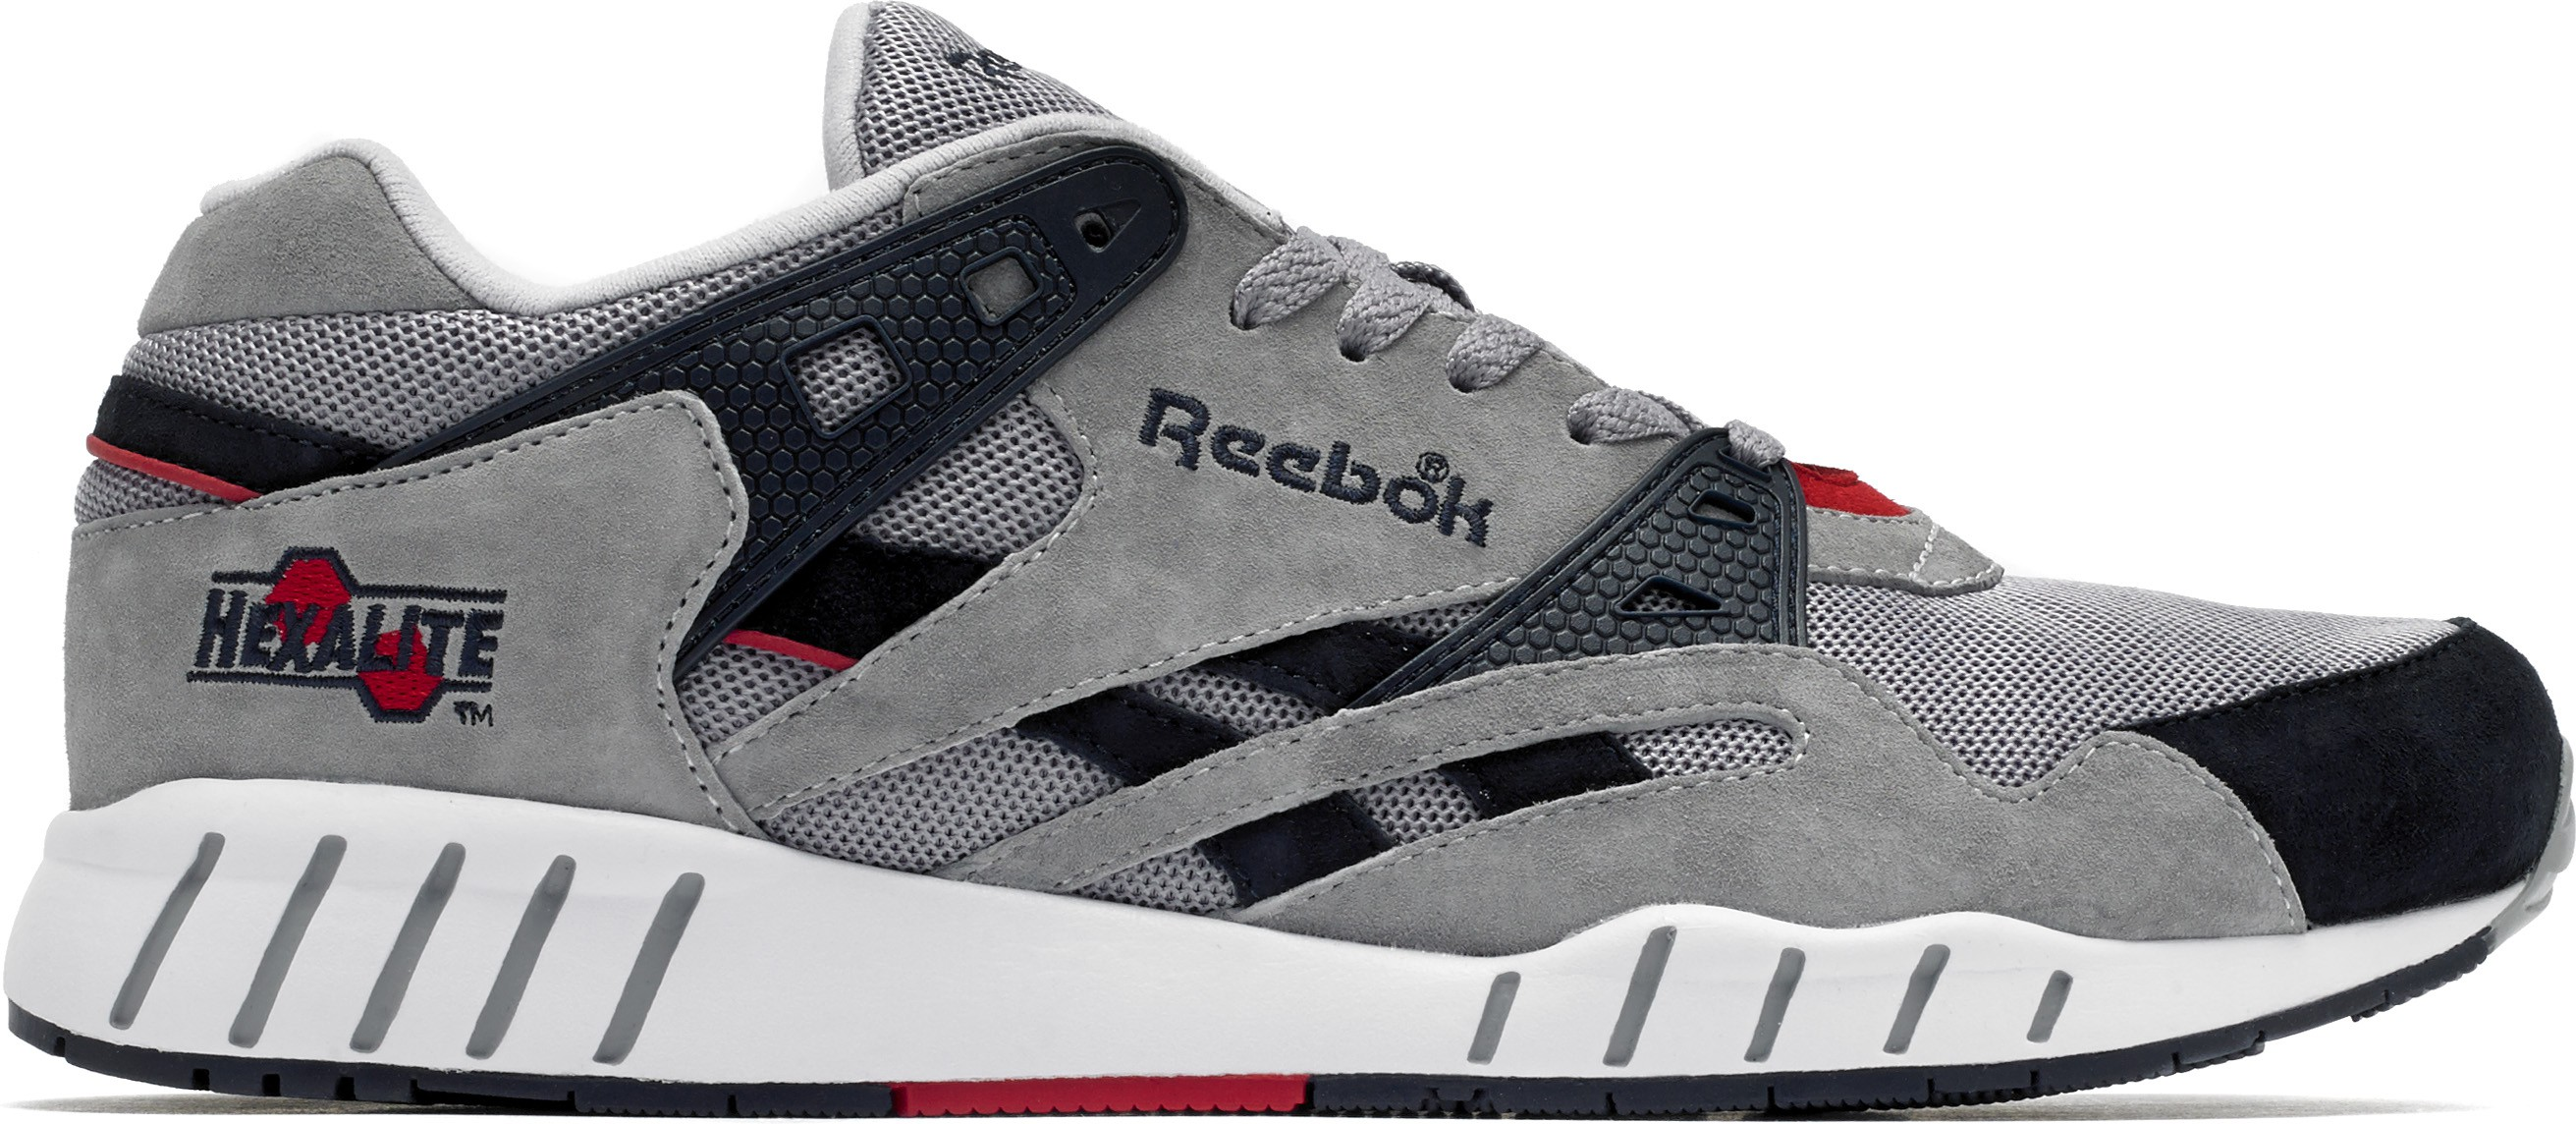 Reebok Homme Chaussures